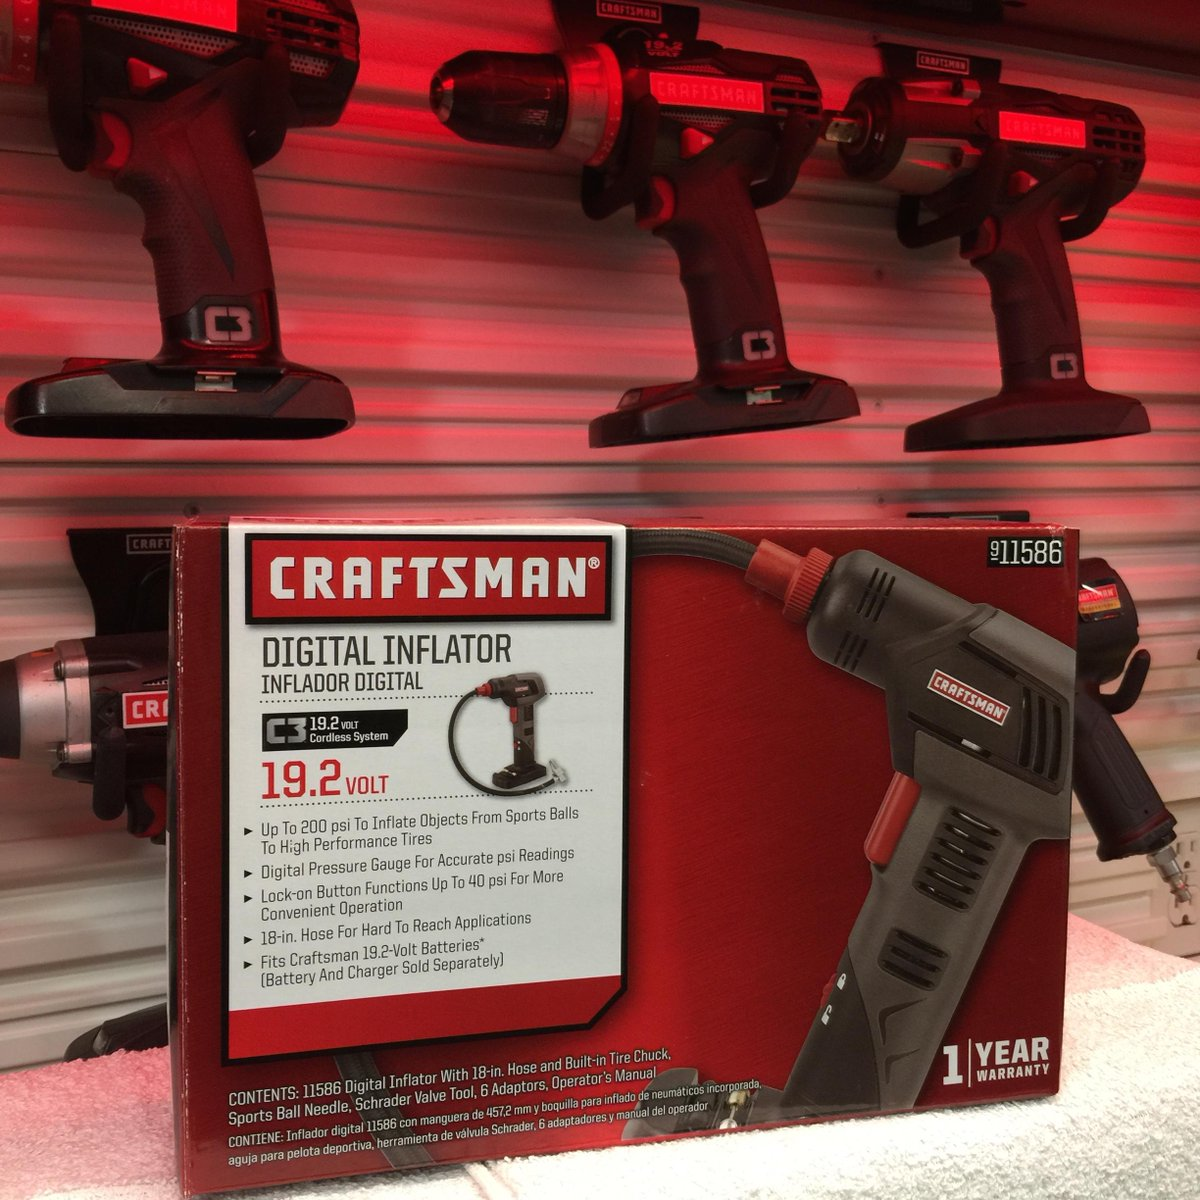 Retweet for a chance to #WIN this @Craftsman C3 Cordless Inflator! Enter http://t.co/CZuw41cVcP #tools #giveaways http://t.co/Ahdwe9p4bH